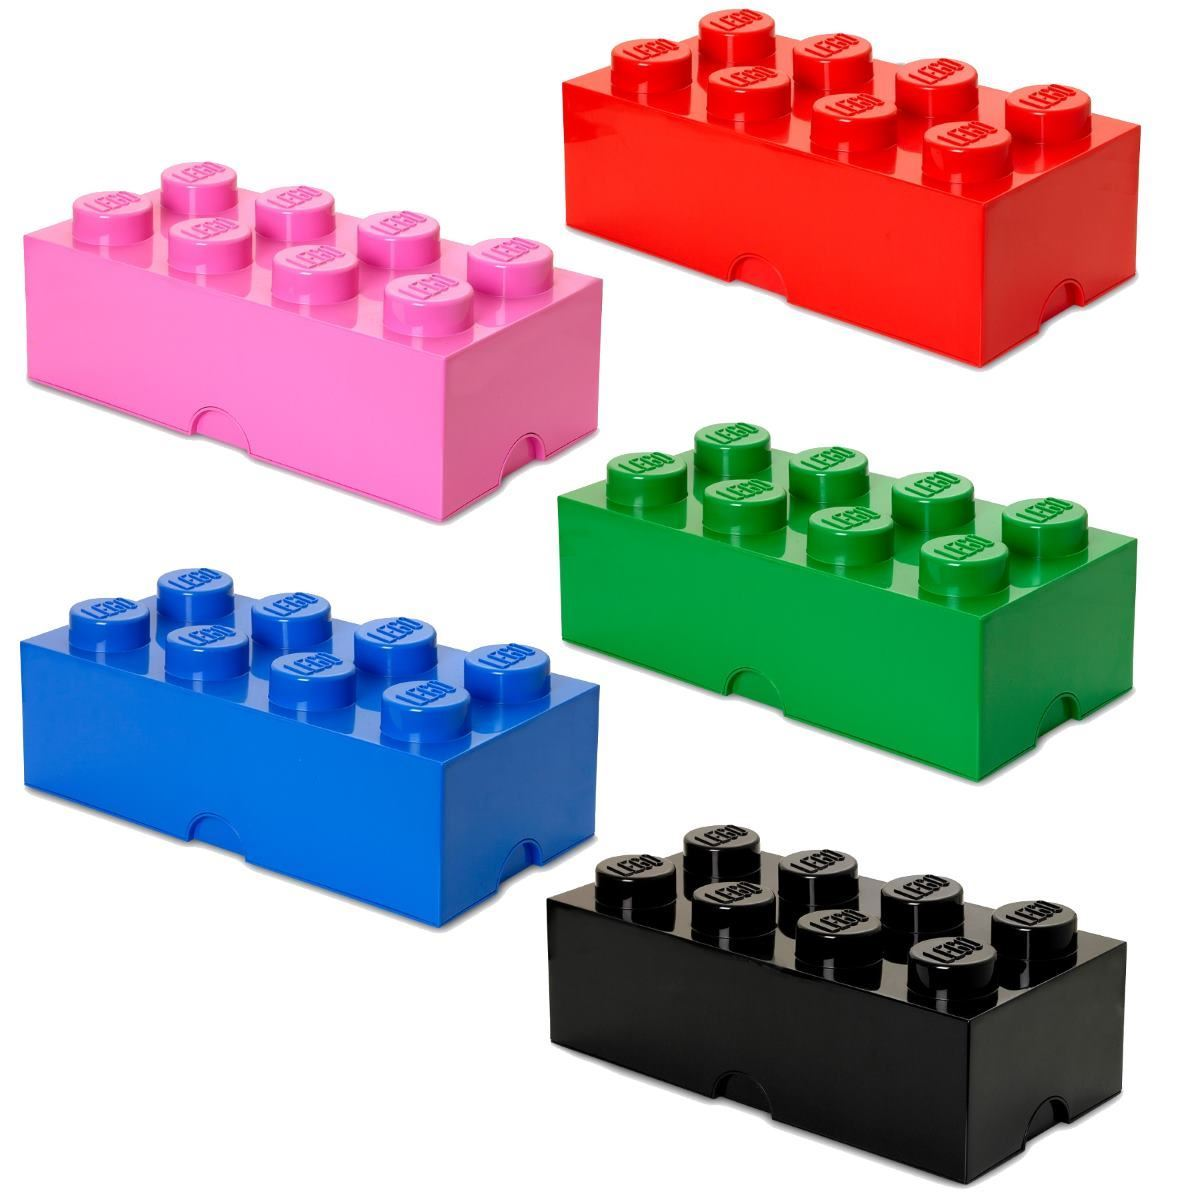 Lego stockage brique 8 blocs de construction meuble for Brick meuble francais